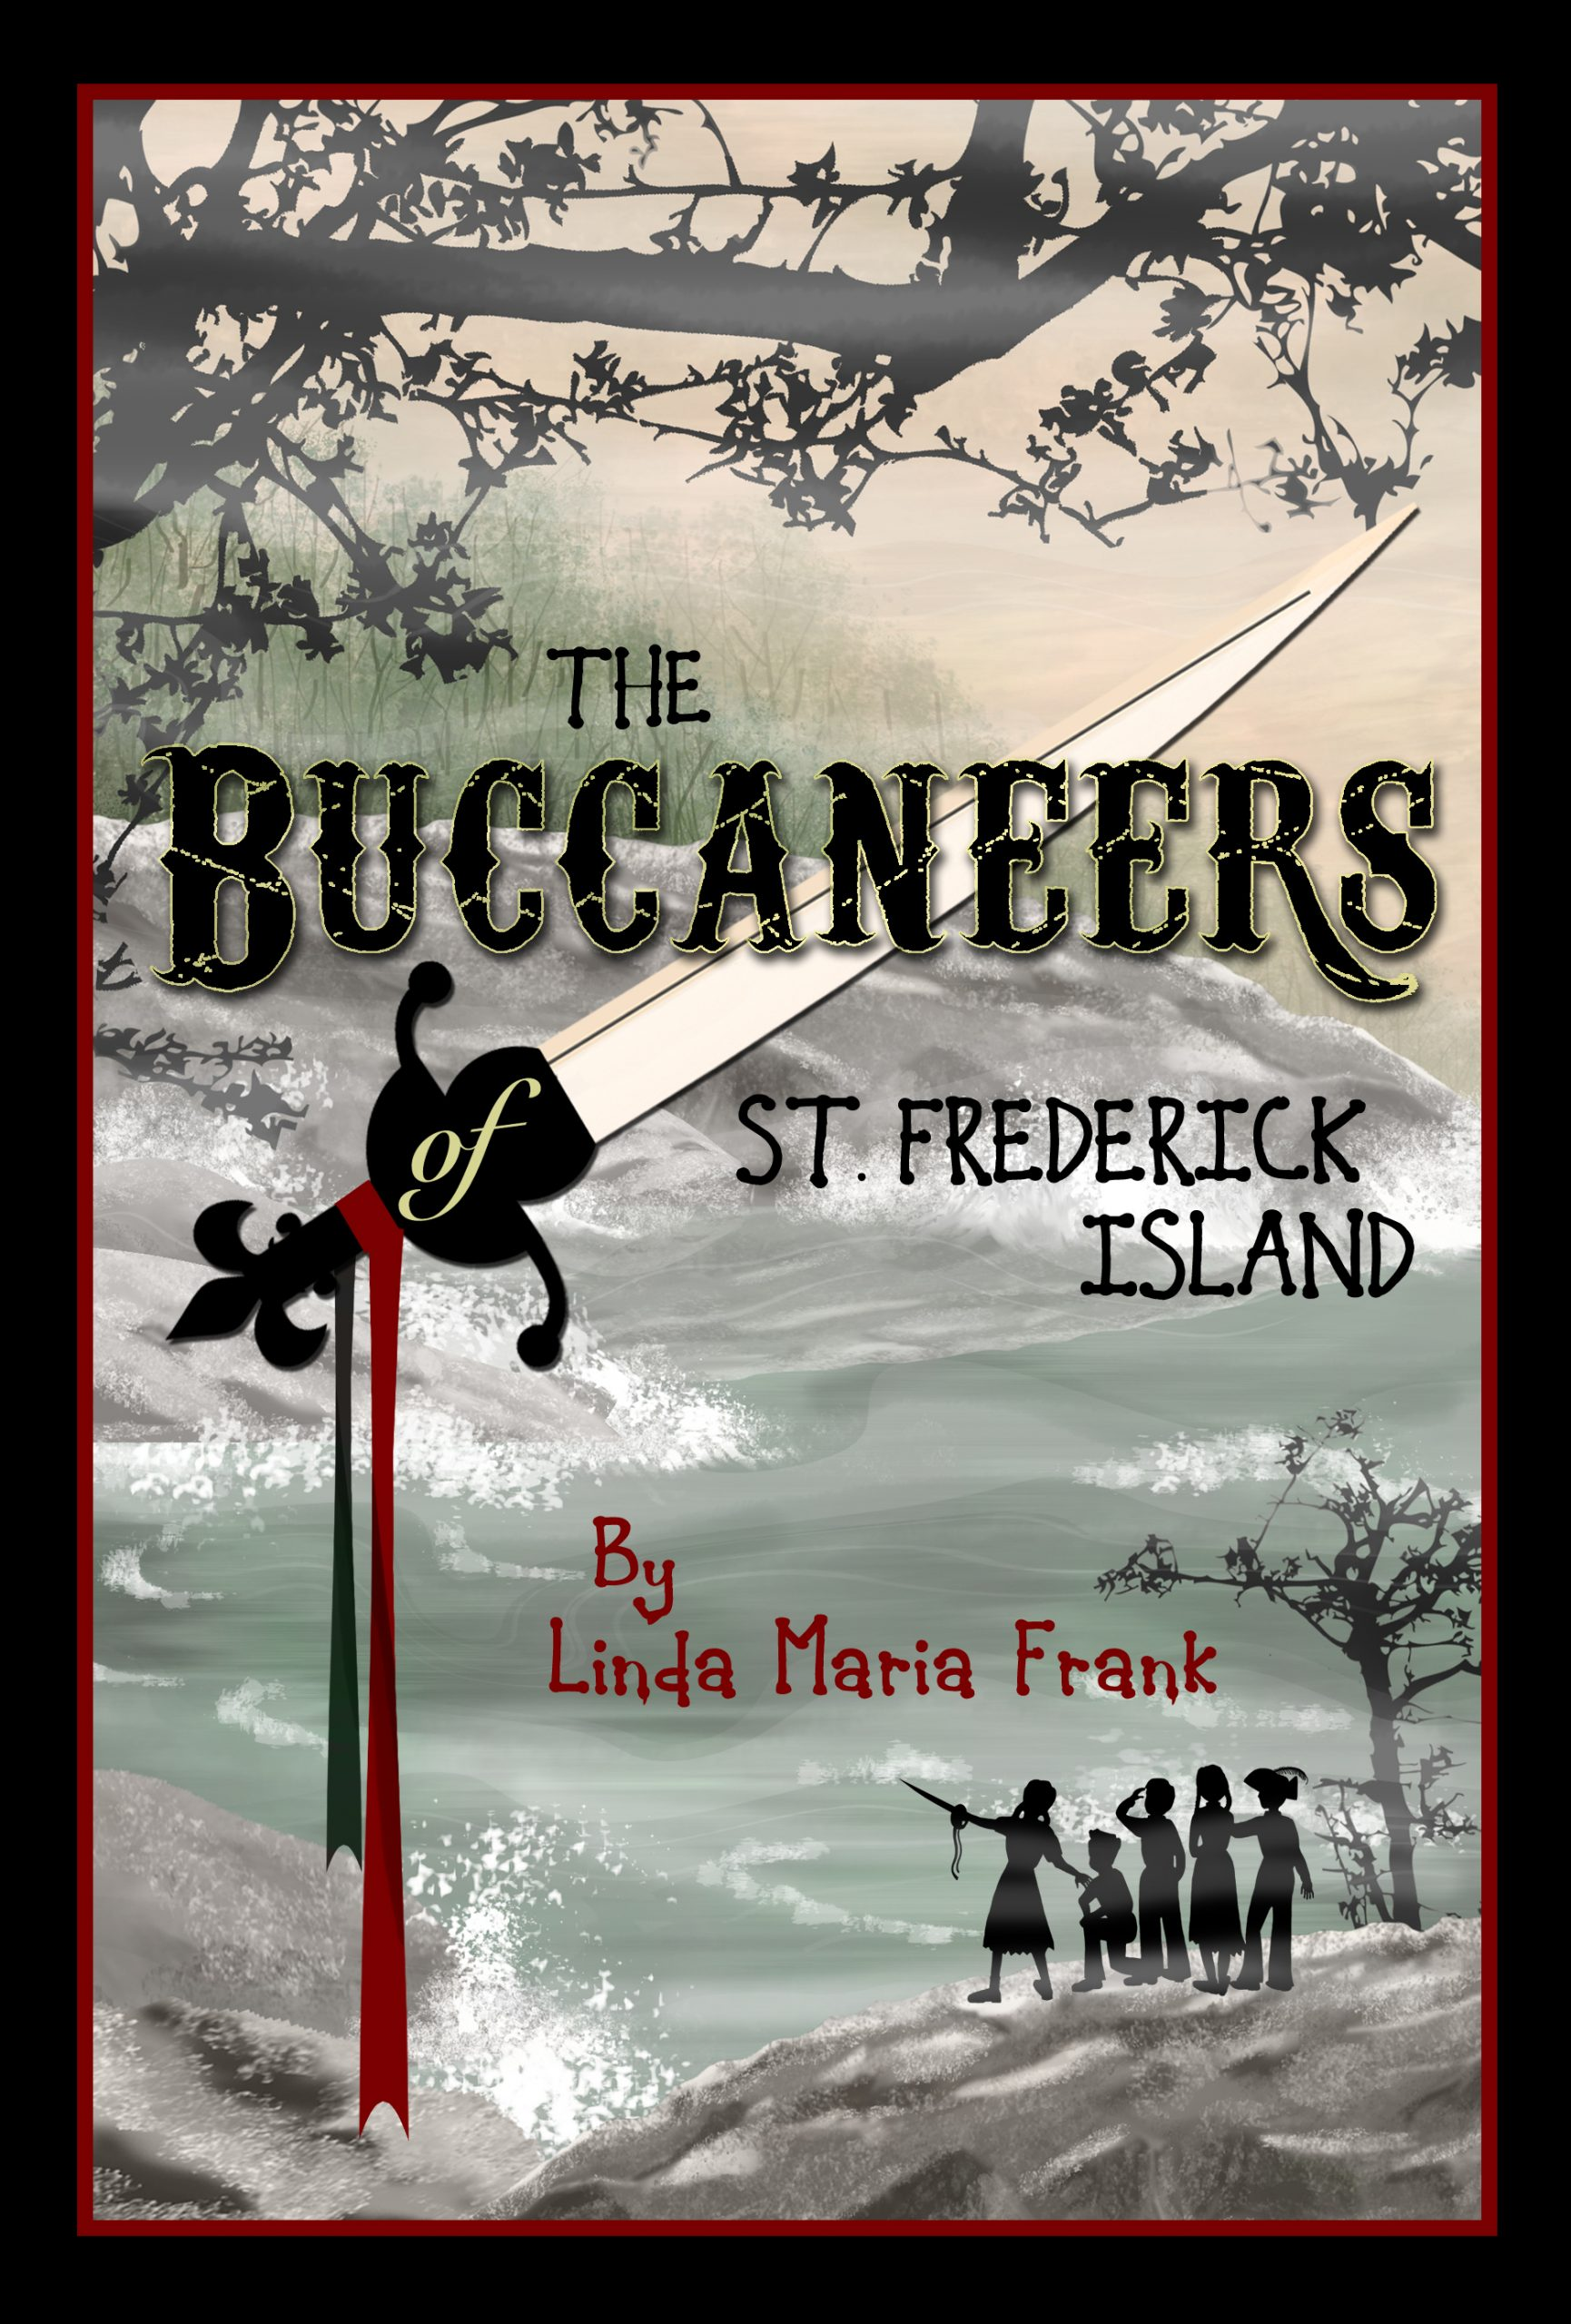 The Buccaneers of St. Frederick Island